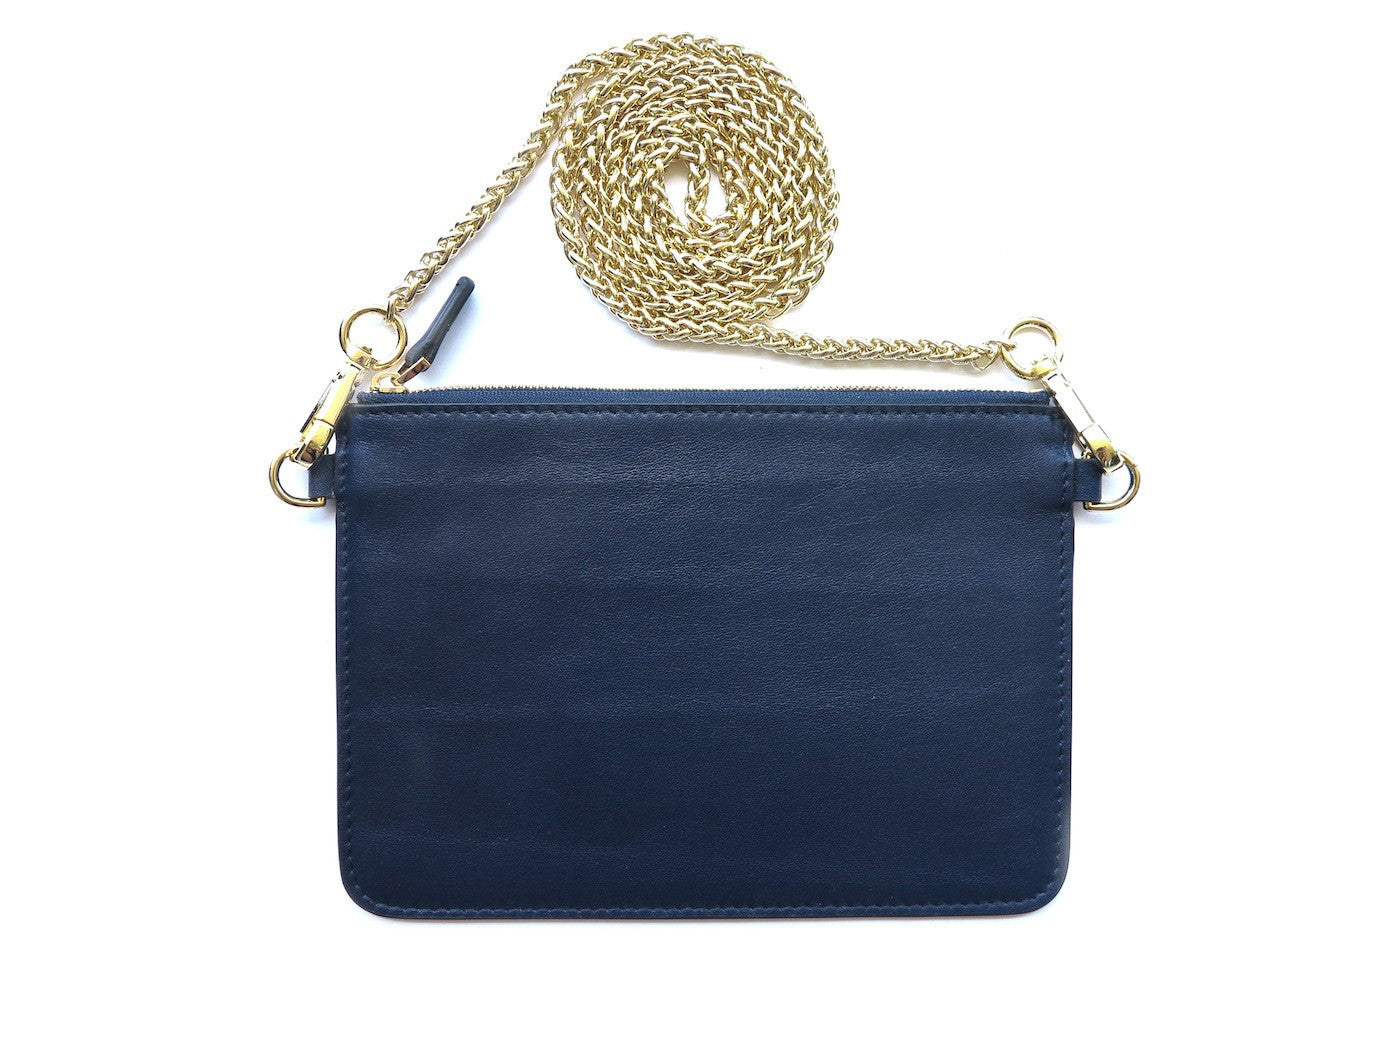 Soirée Pochette - French Navy - PEDRO'S BLUFF - New Zealand Leather Bags & Accessories